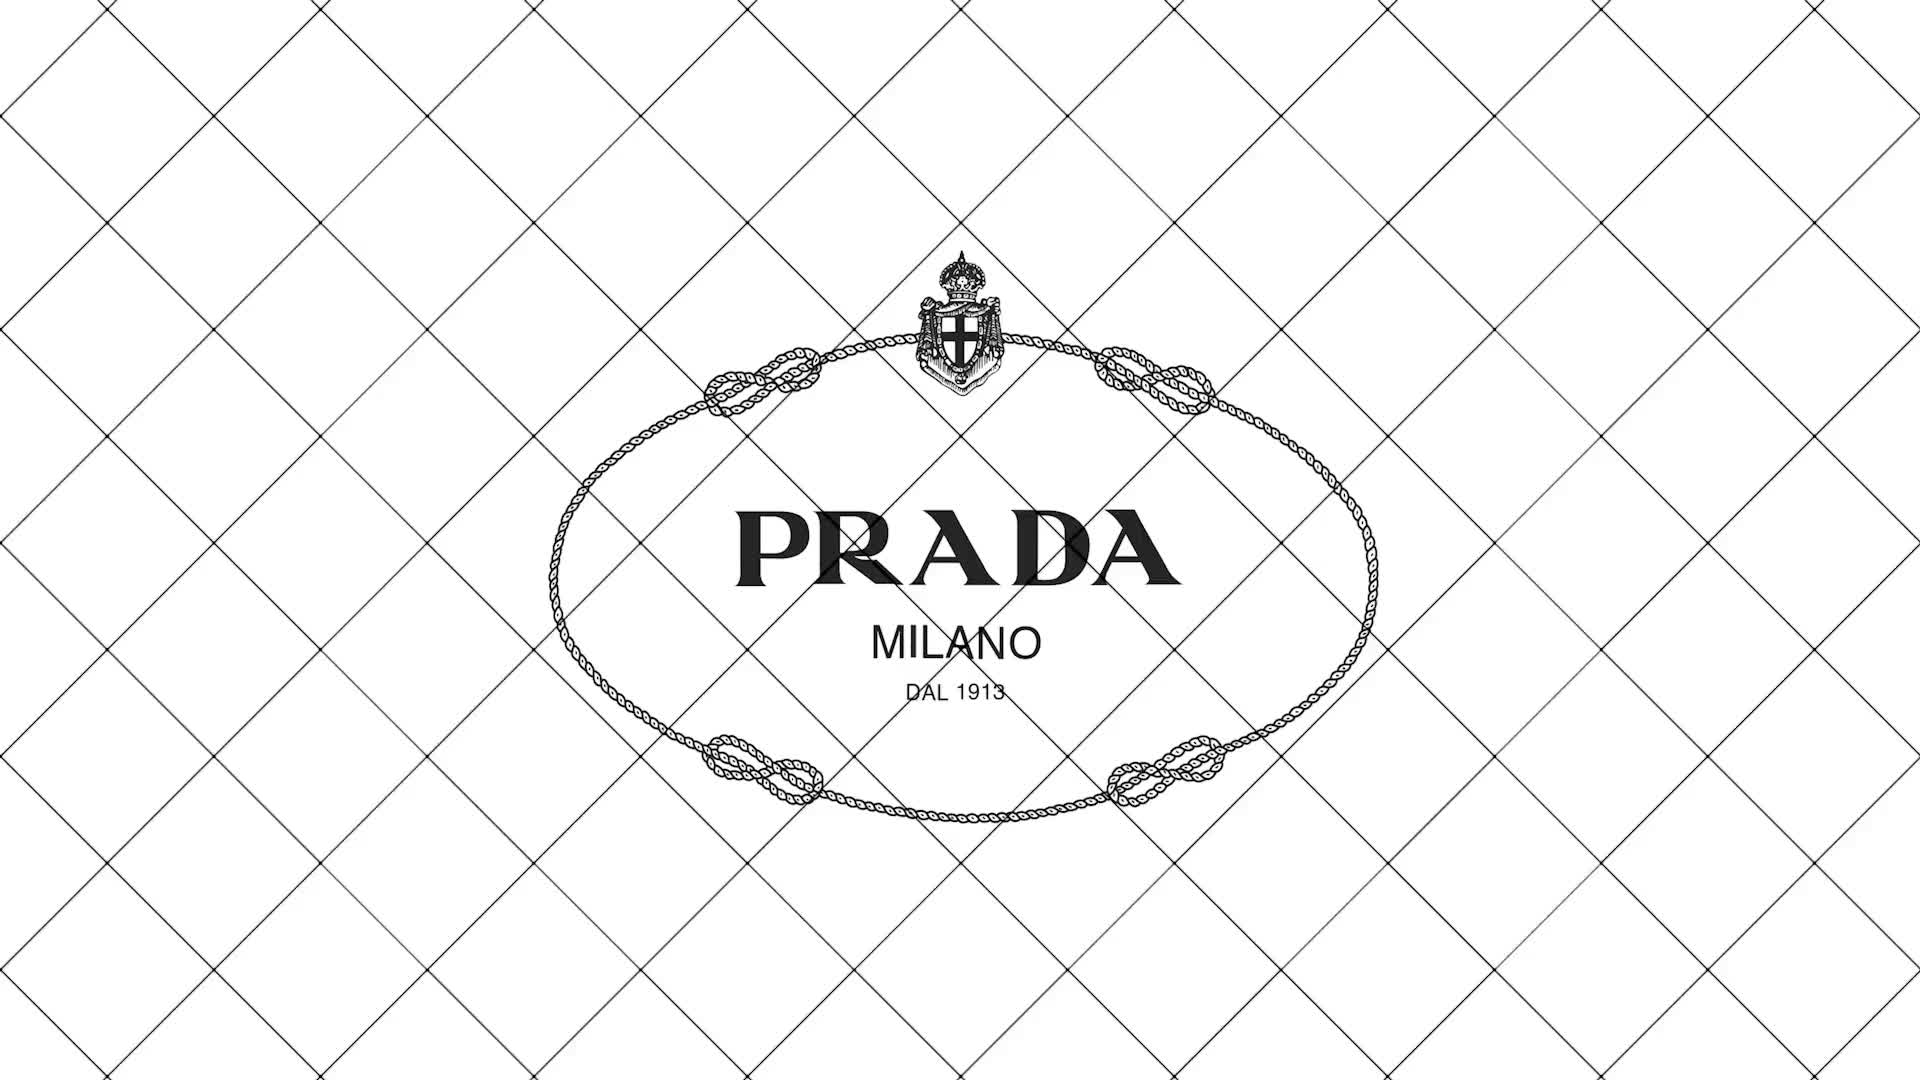 Prada flowers logo design cgi fashion film grid spin